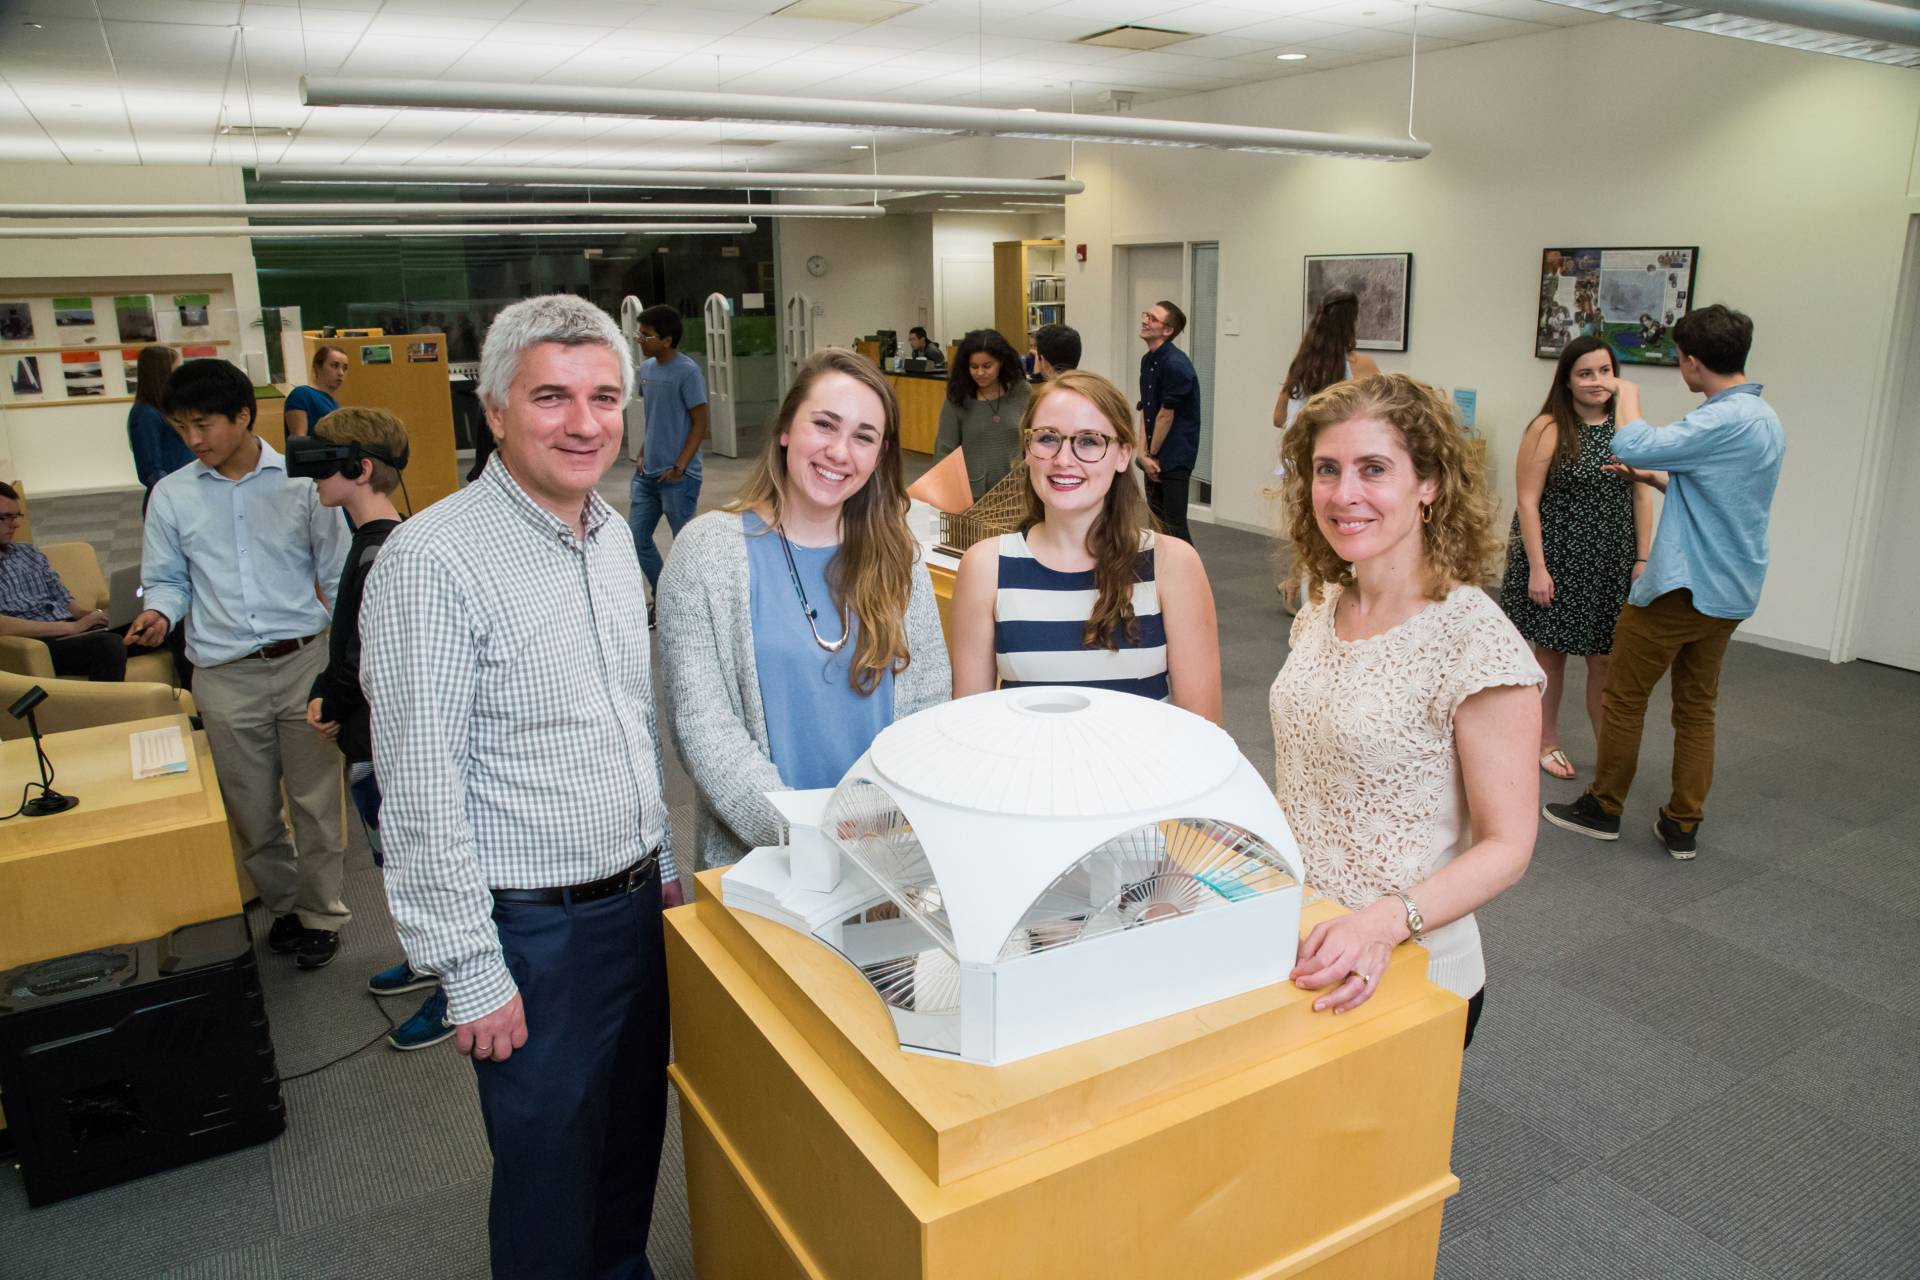 Isabella Douglas standing with architecture model and professors